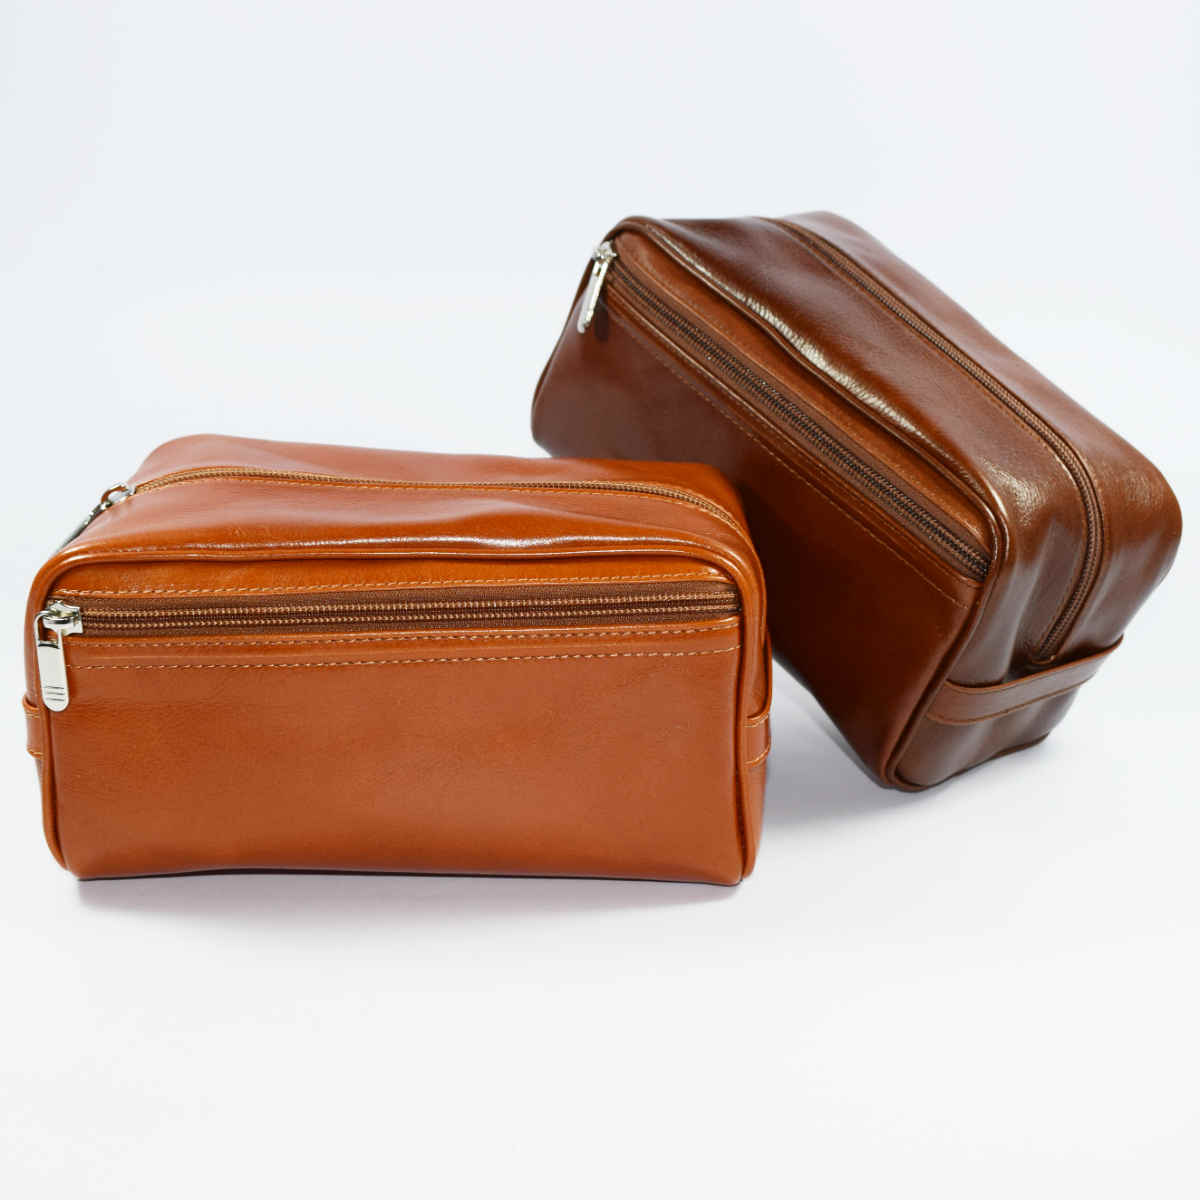 1764 TROUSSE FOR MEN by Bottega Fiorentina